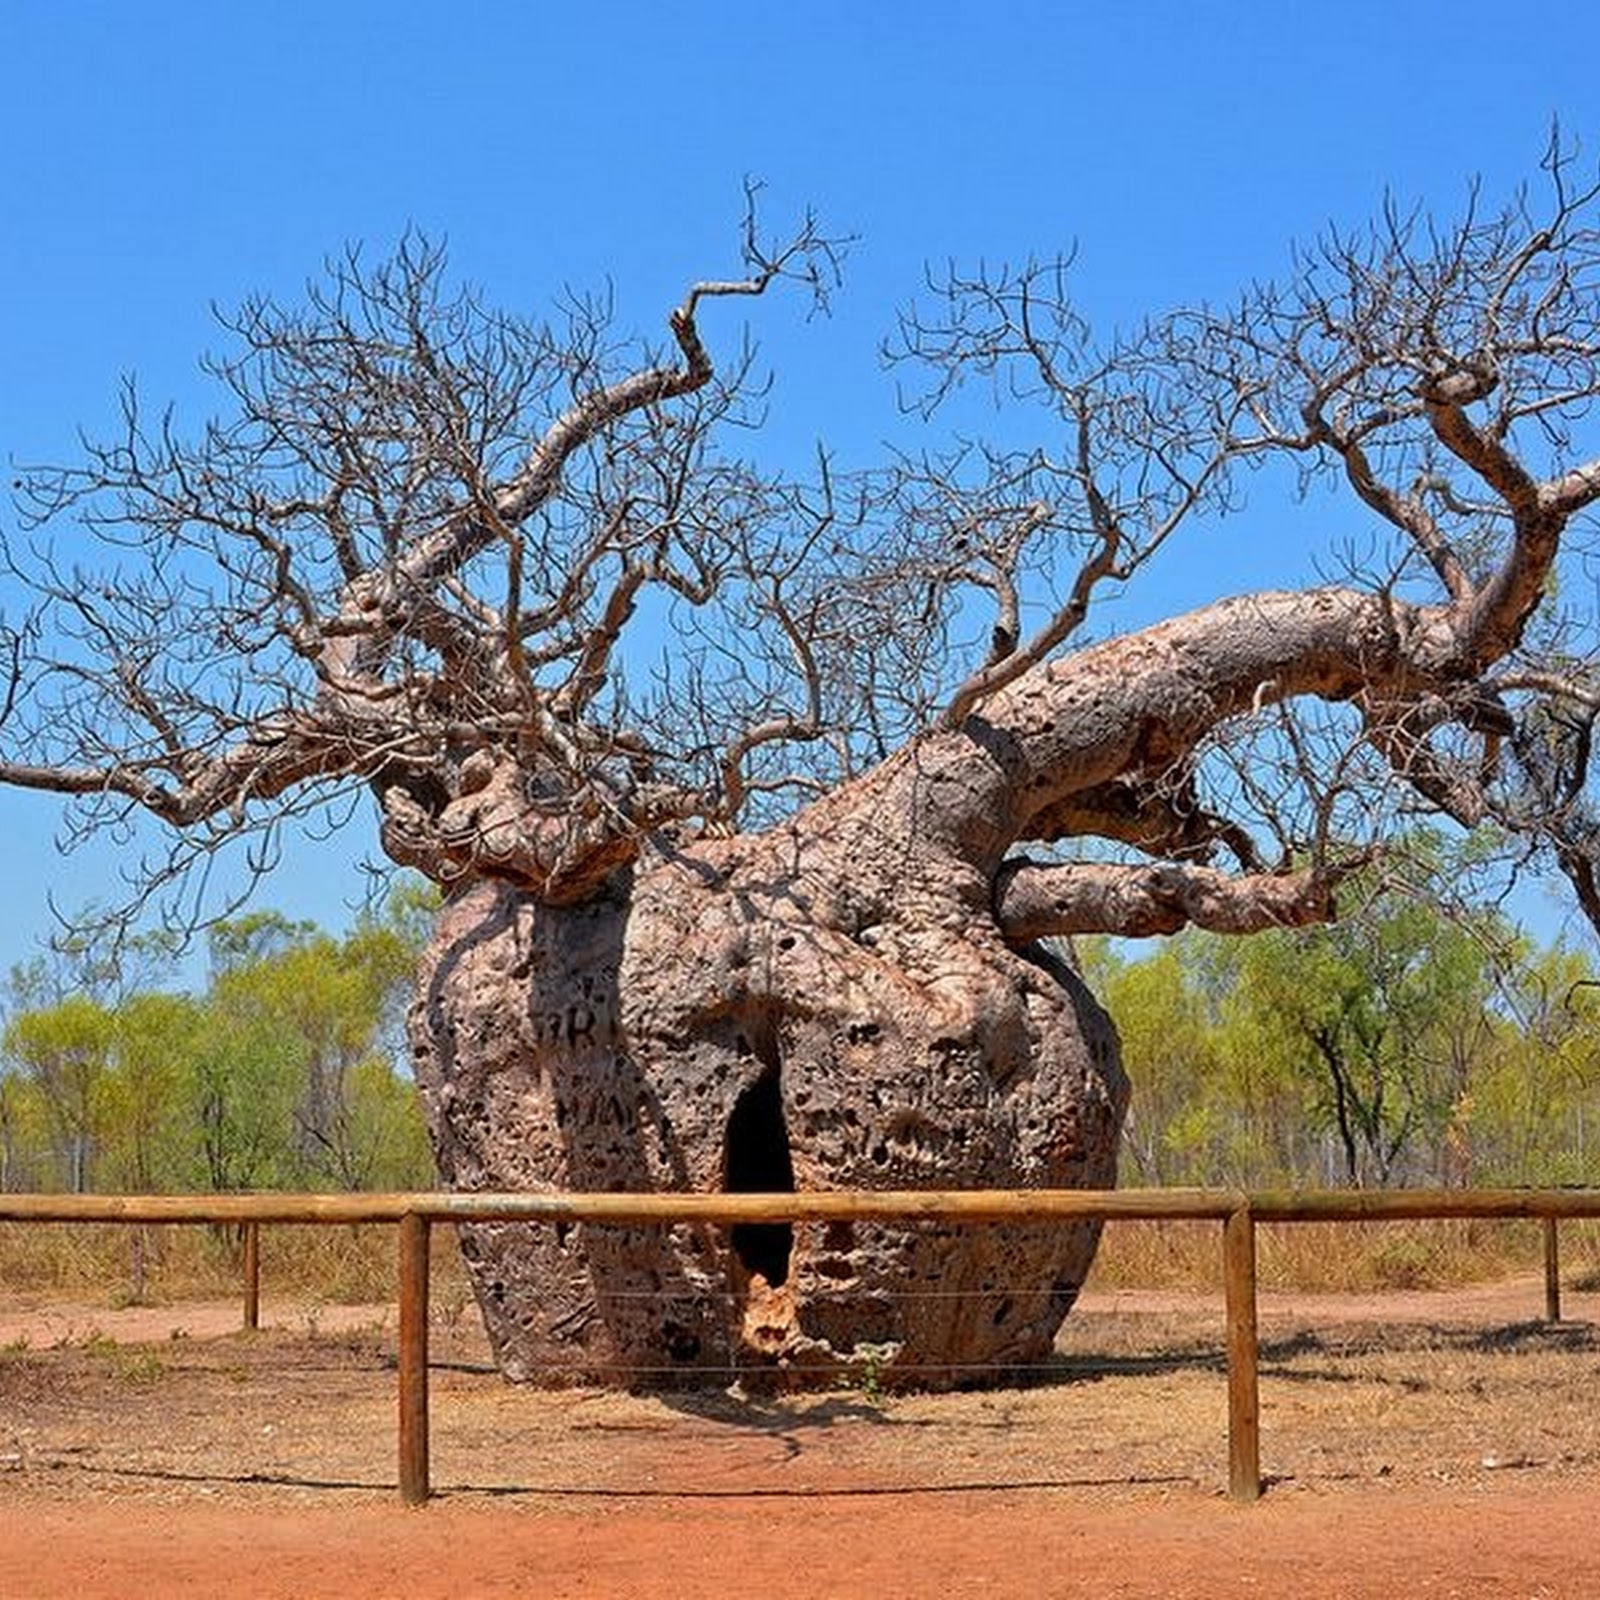 The Boab Prison Trees of Australia